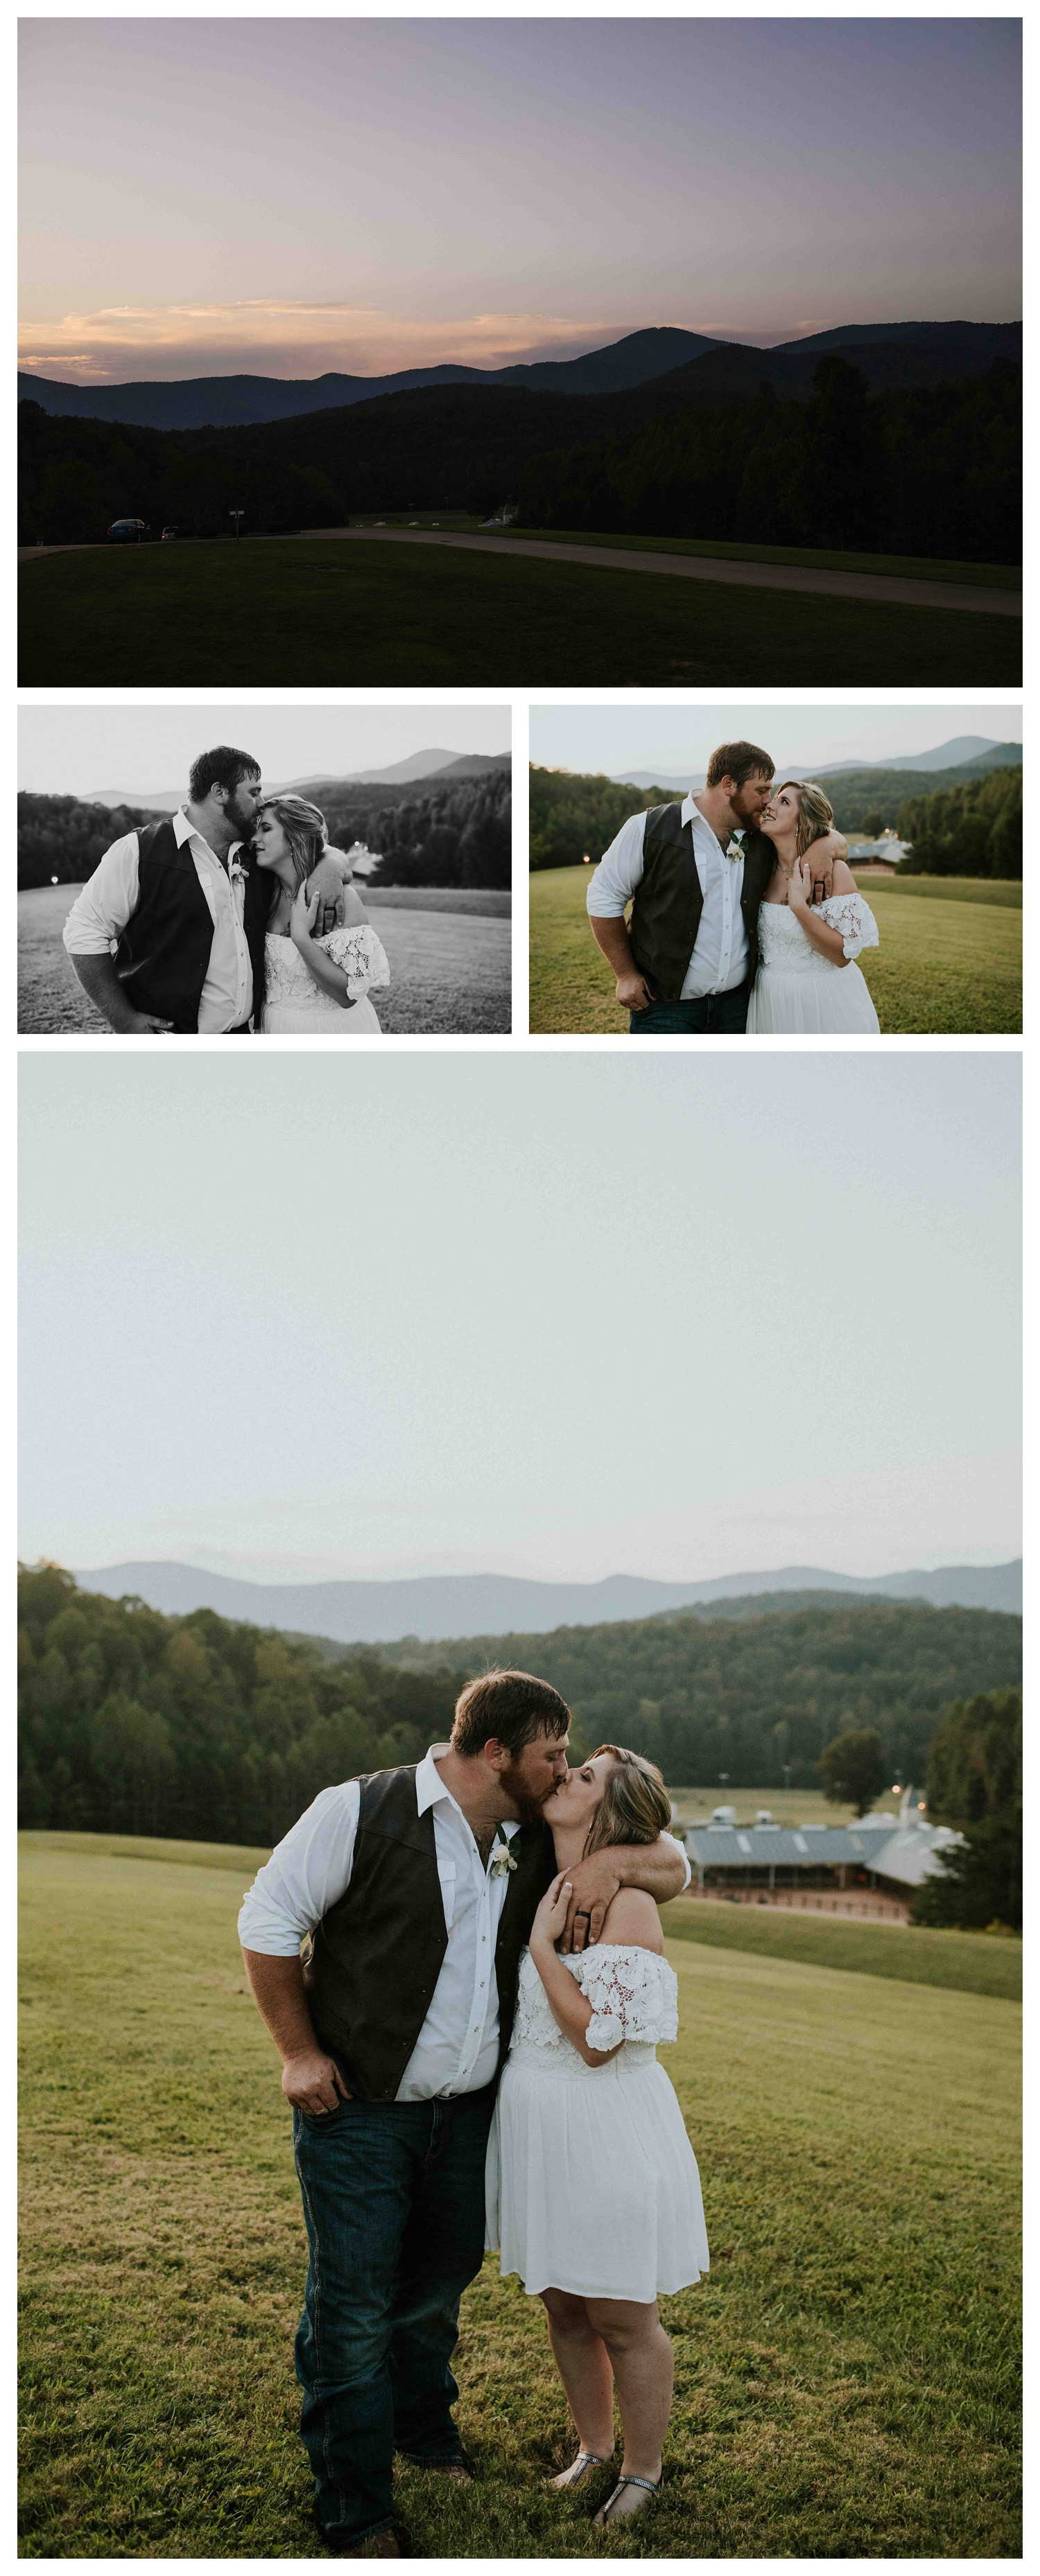 Destination Wedding Photographer R-Ranch in the Mountains Georgia Chloe Ann Photography_0014.jpg